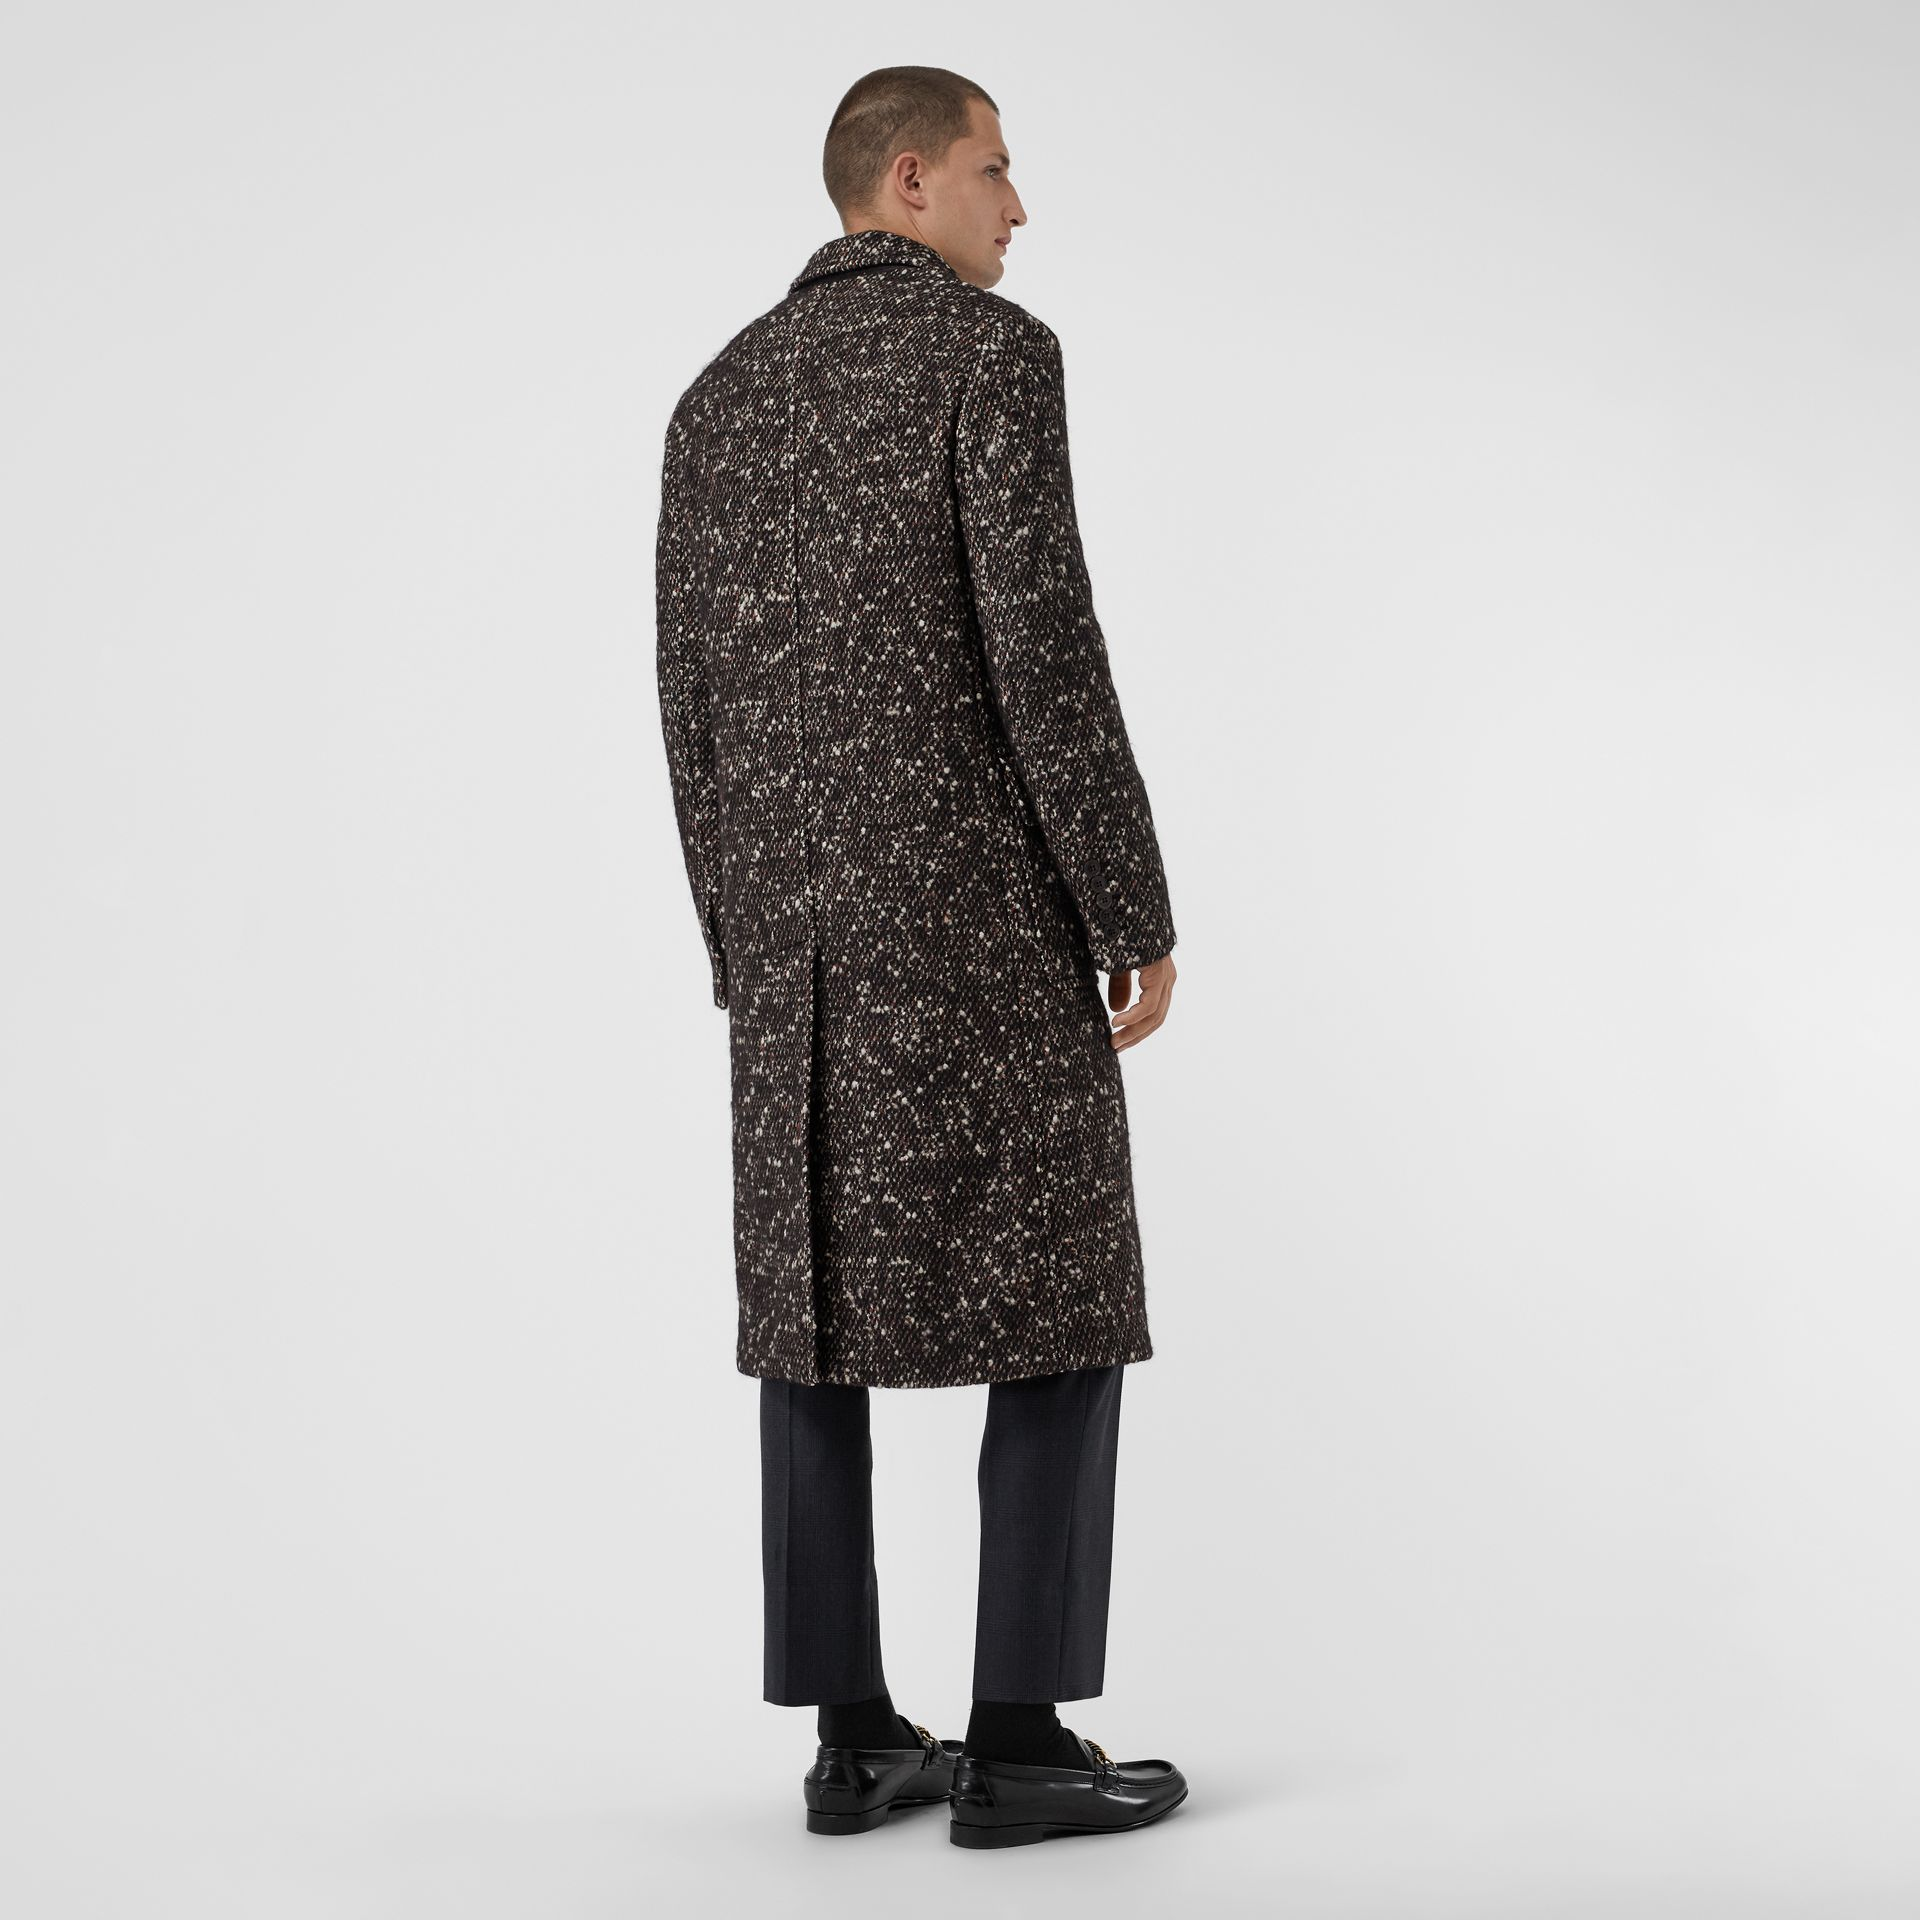 Wool Mohair Blend Tweed Tailored Coat in Black - Men | Burberry United States - gallery image 2